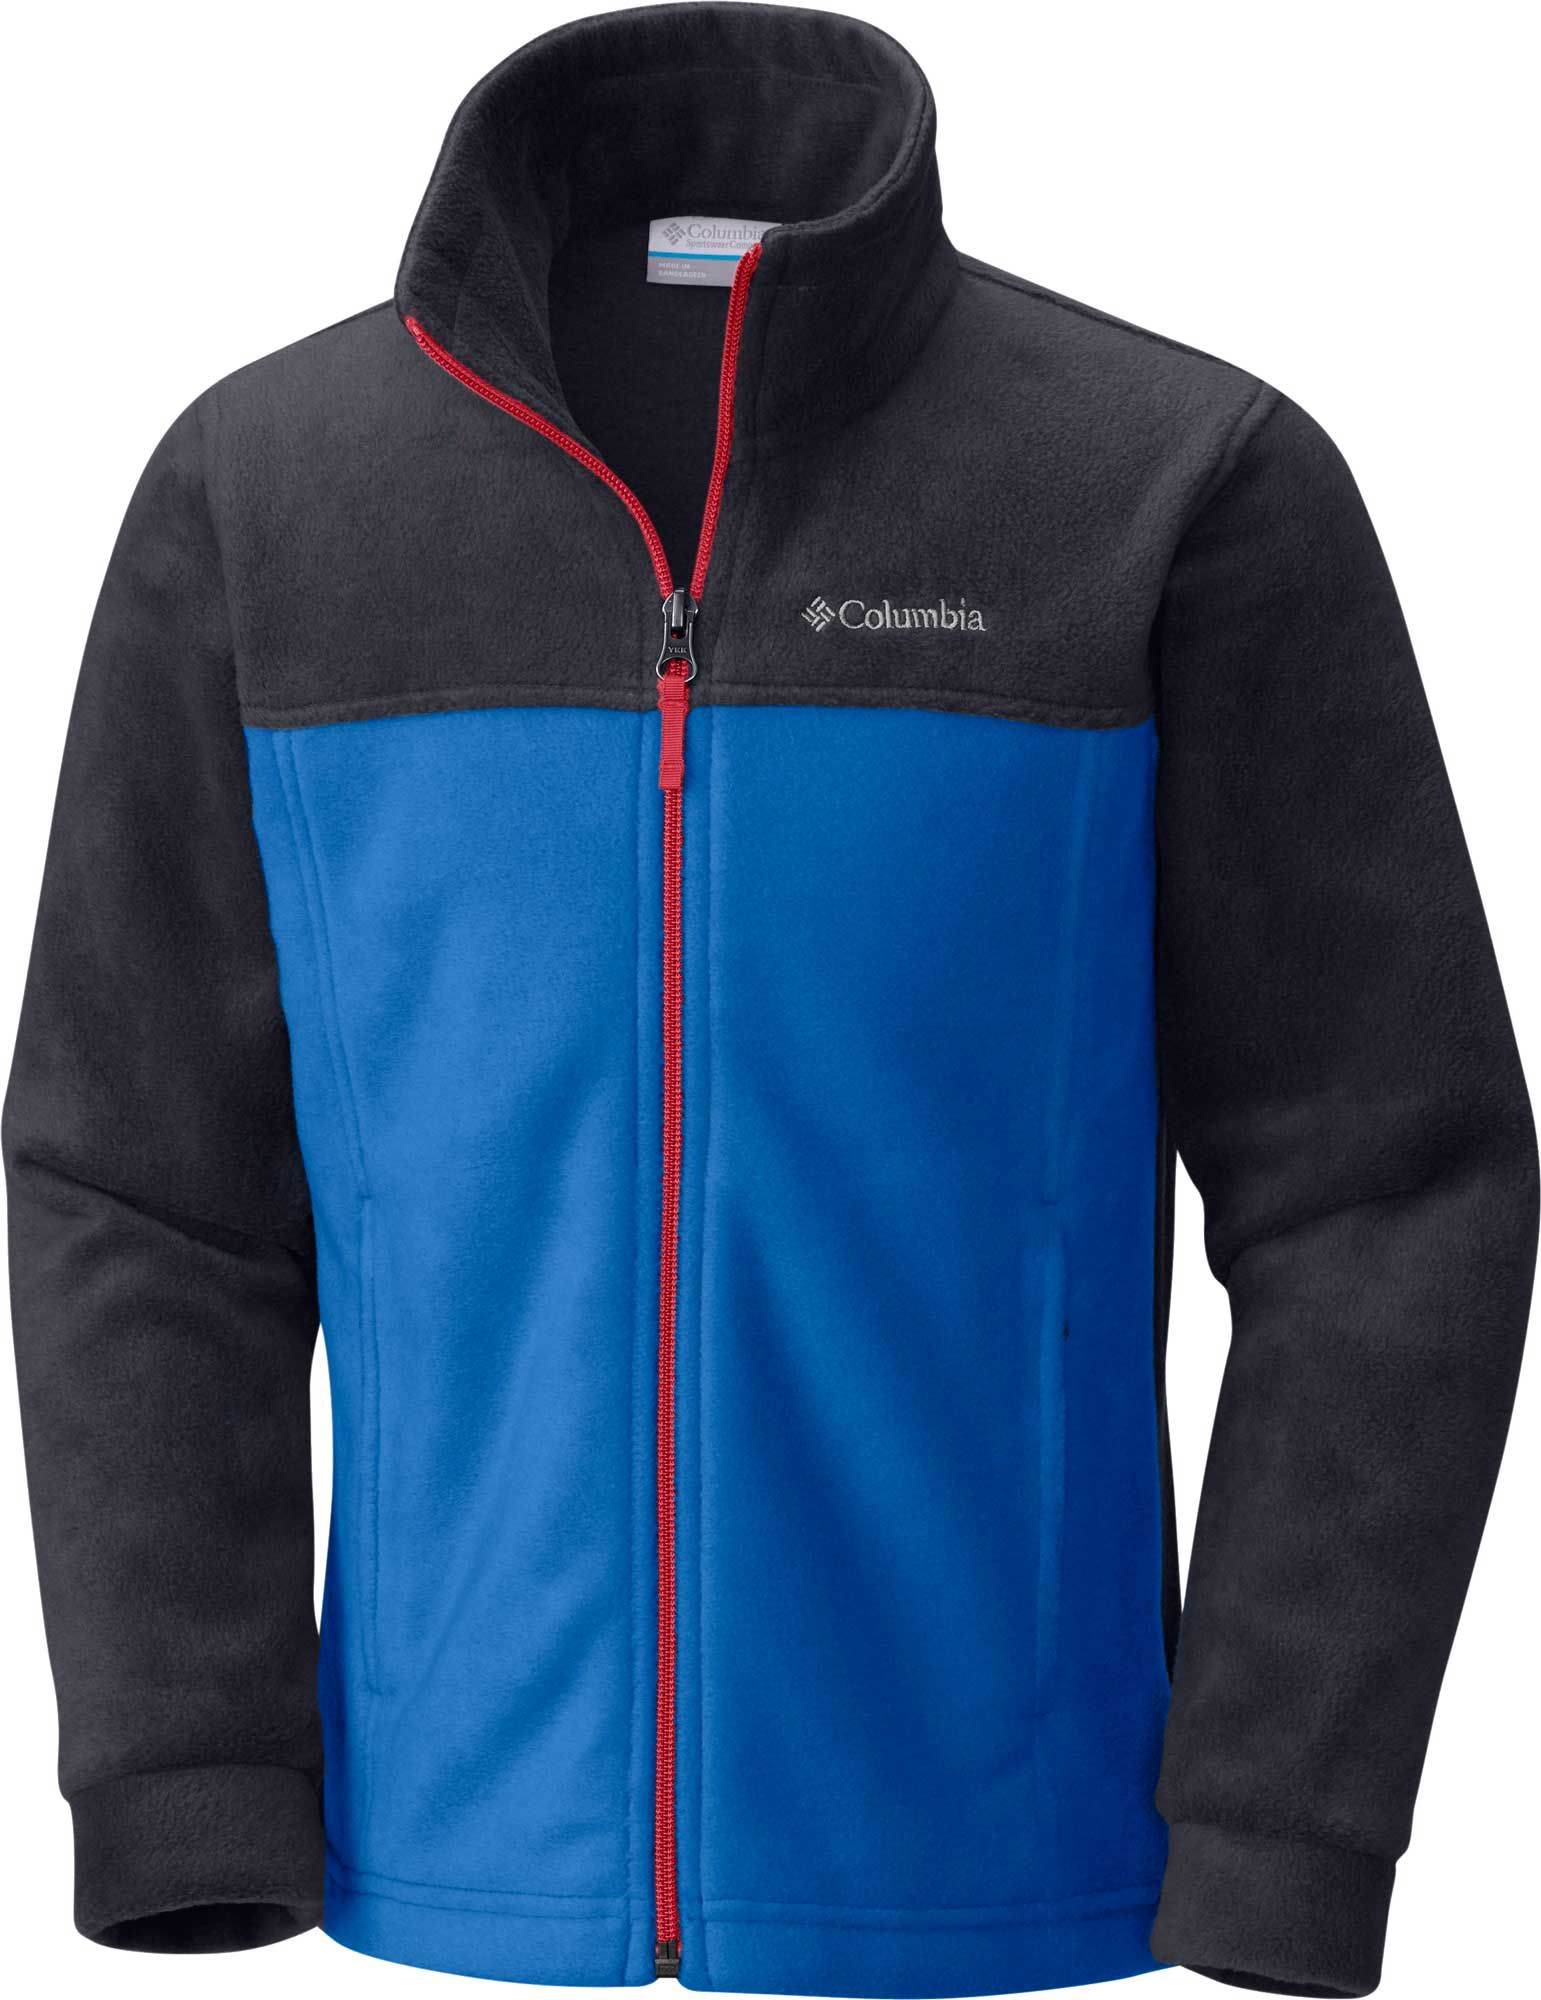 Boys' Fleece Jackets | DICK'S Sporting Goods